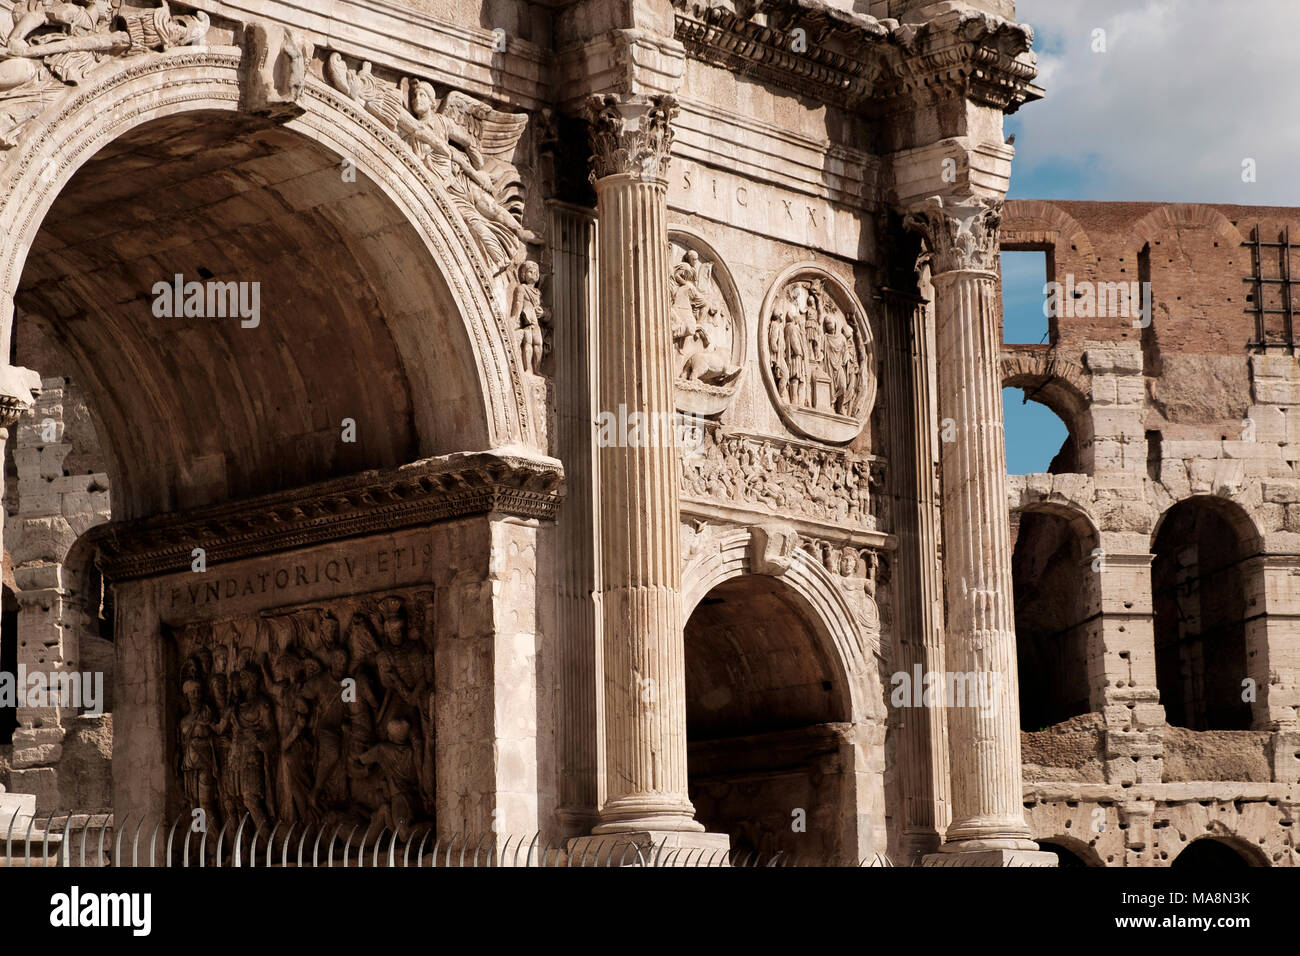 Ornate facade of the Arch of Constantine, Arco di Costantino, and the Colosseum Rome - Stock Image